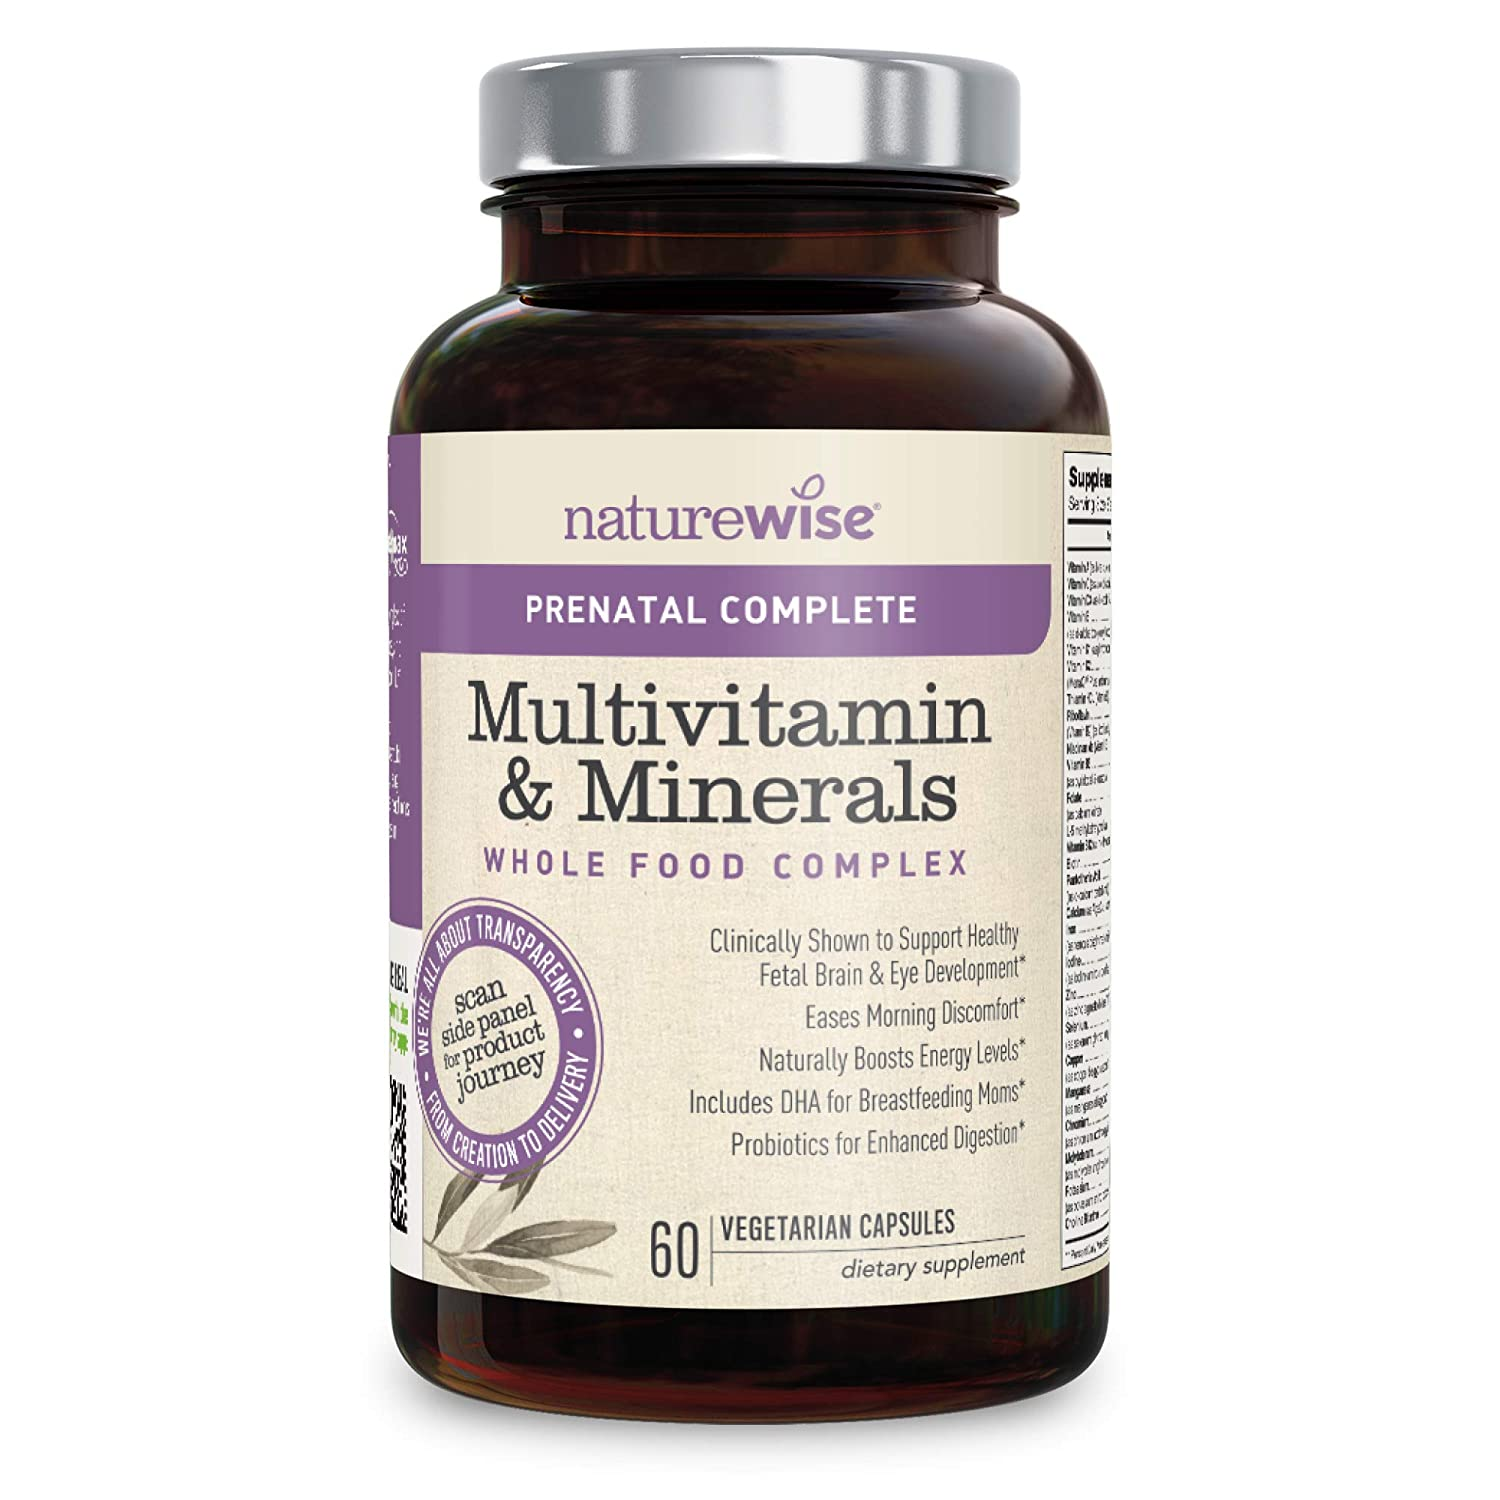 Amazon.com: NatureWise Prenatal Whole Food Multivitamin for Women | Folate, Vegetarian DHA, Non-Constipating Iron, Plant-Based Calcium, Lutemax Lutein, ...